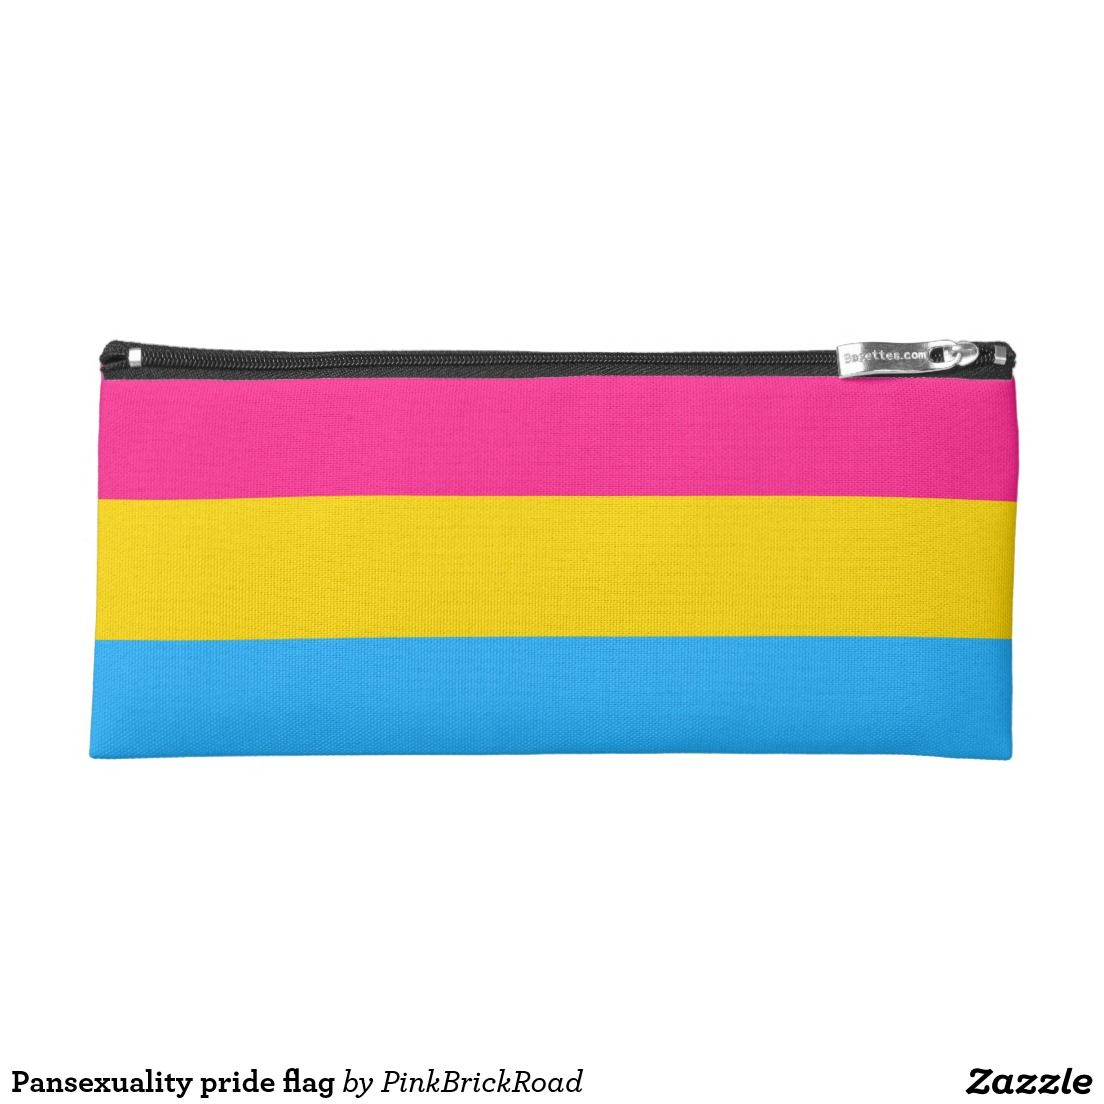 Pansexuality pride flag pencil case